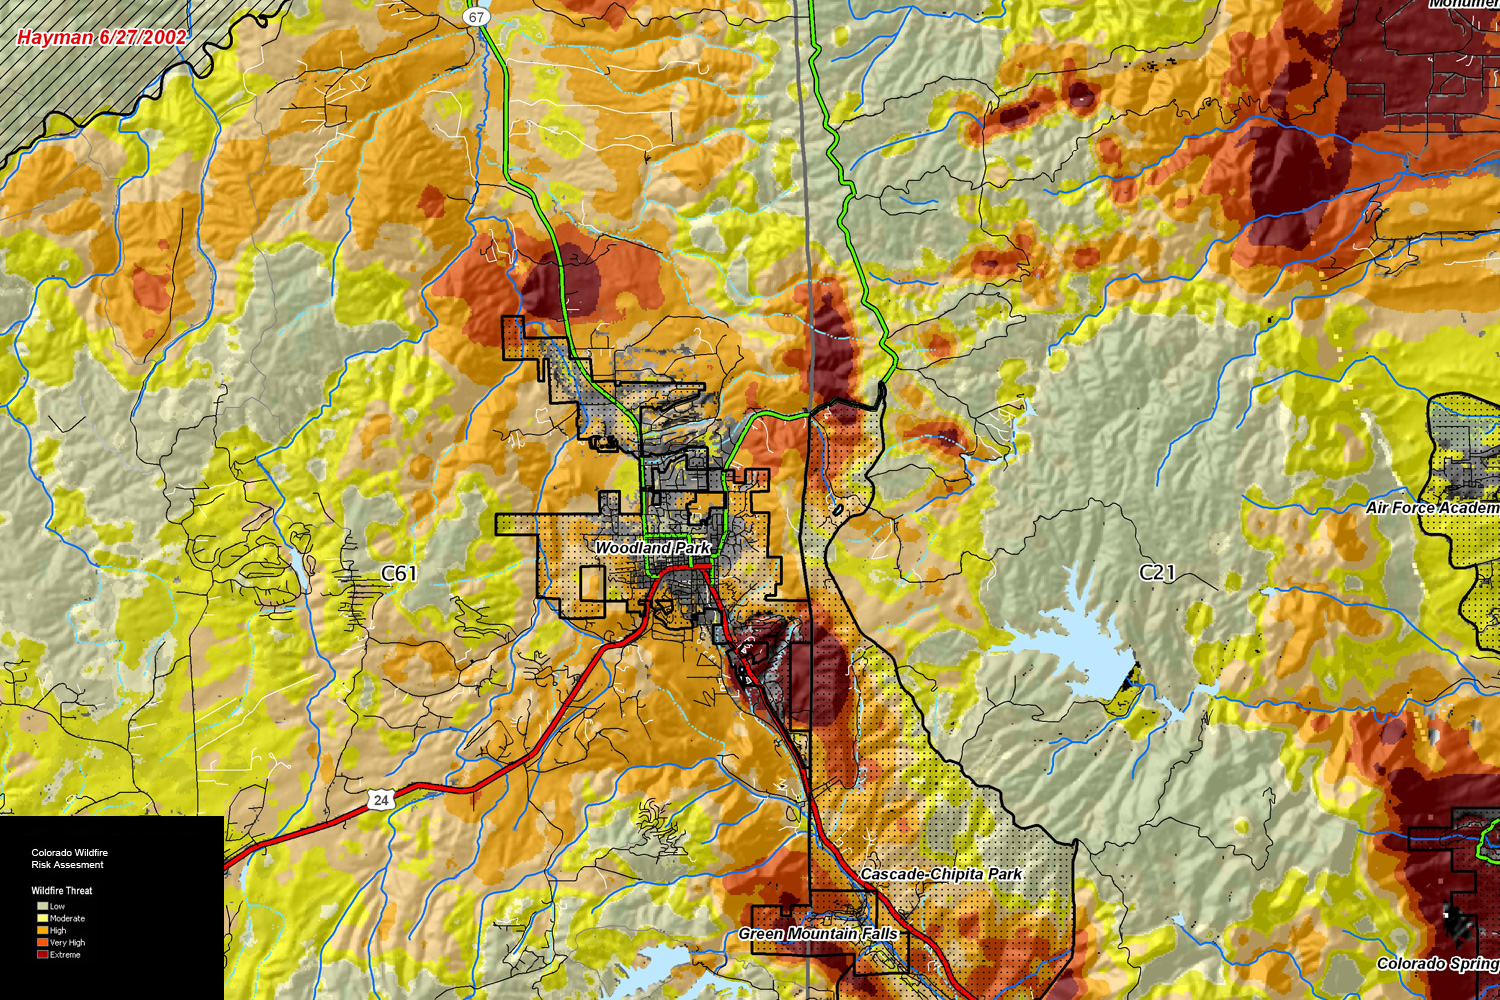 Sample Image Western Colorado Wildfire Risk Assessment Program